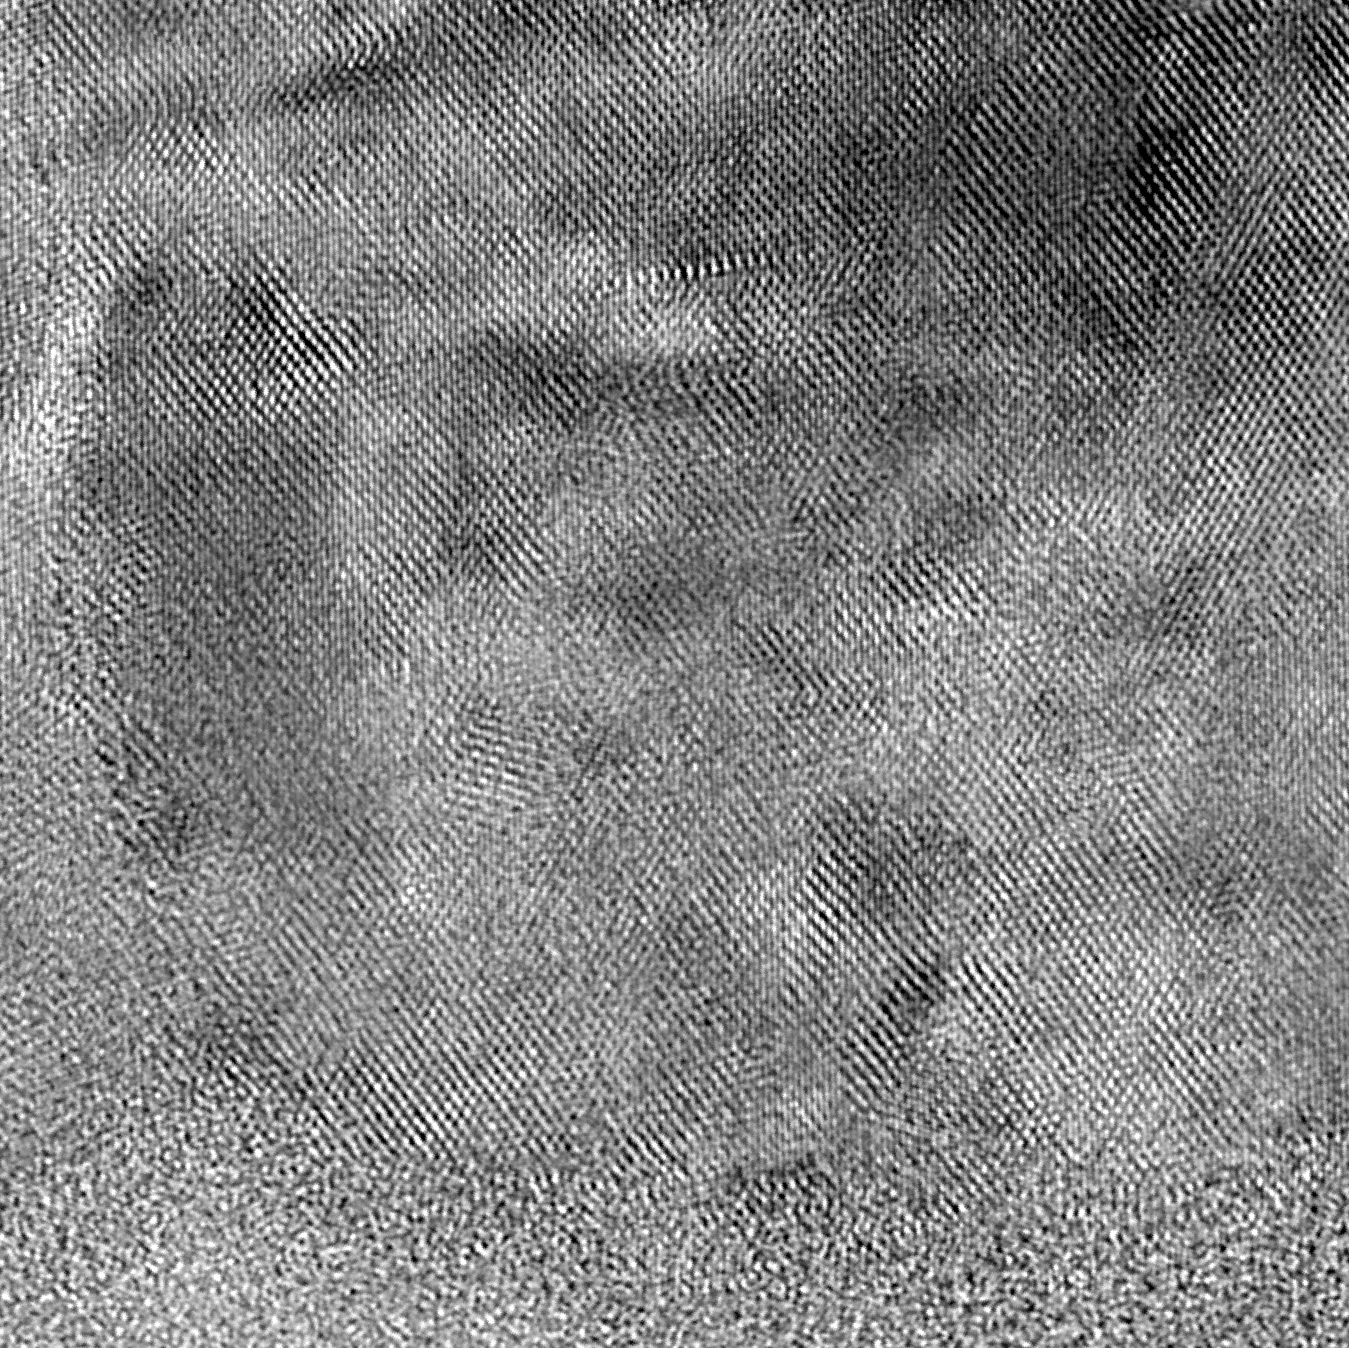 <p>Ultra high resolution brightfield TEM image captured with the 4k Gatan OneView camera.</p>